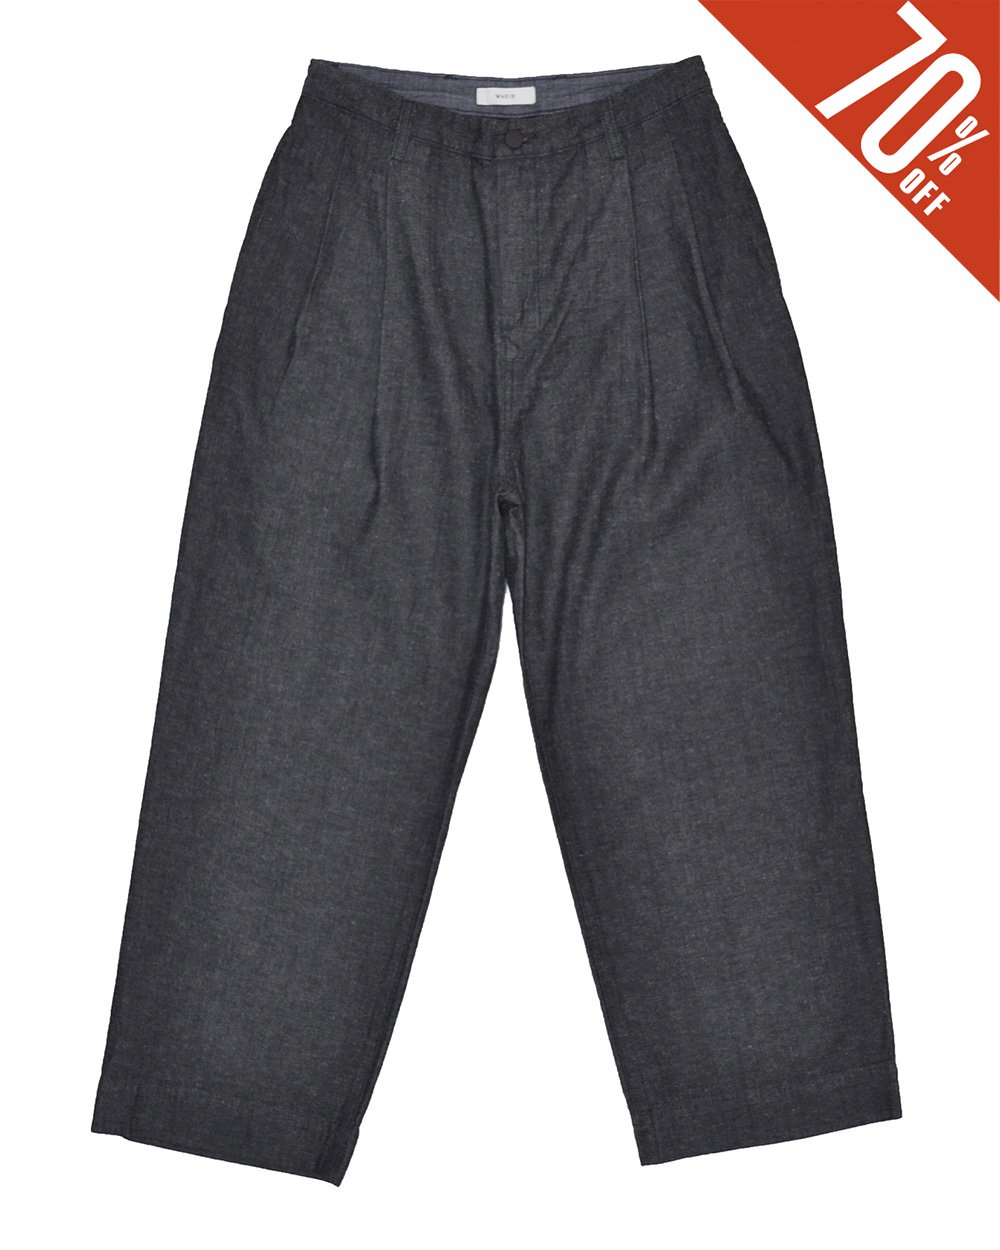 Baggy Trousers<br> [Women's]<br><img class='new_mark_img2' src='https://img.shop-pro.jp/img/new/icons16.gif' style='border:none;display:inline;margin:0px;padding:0px;width:auto;' />